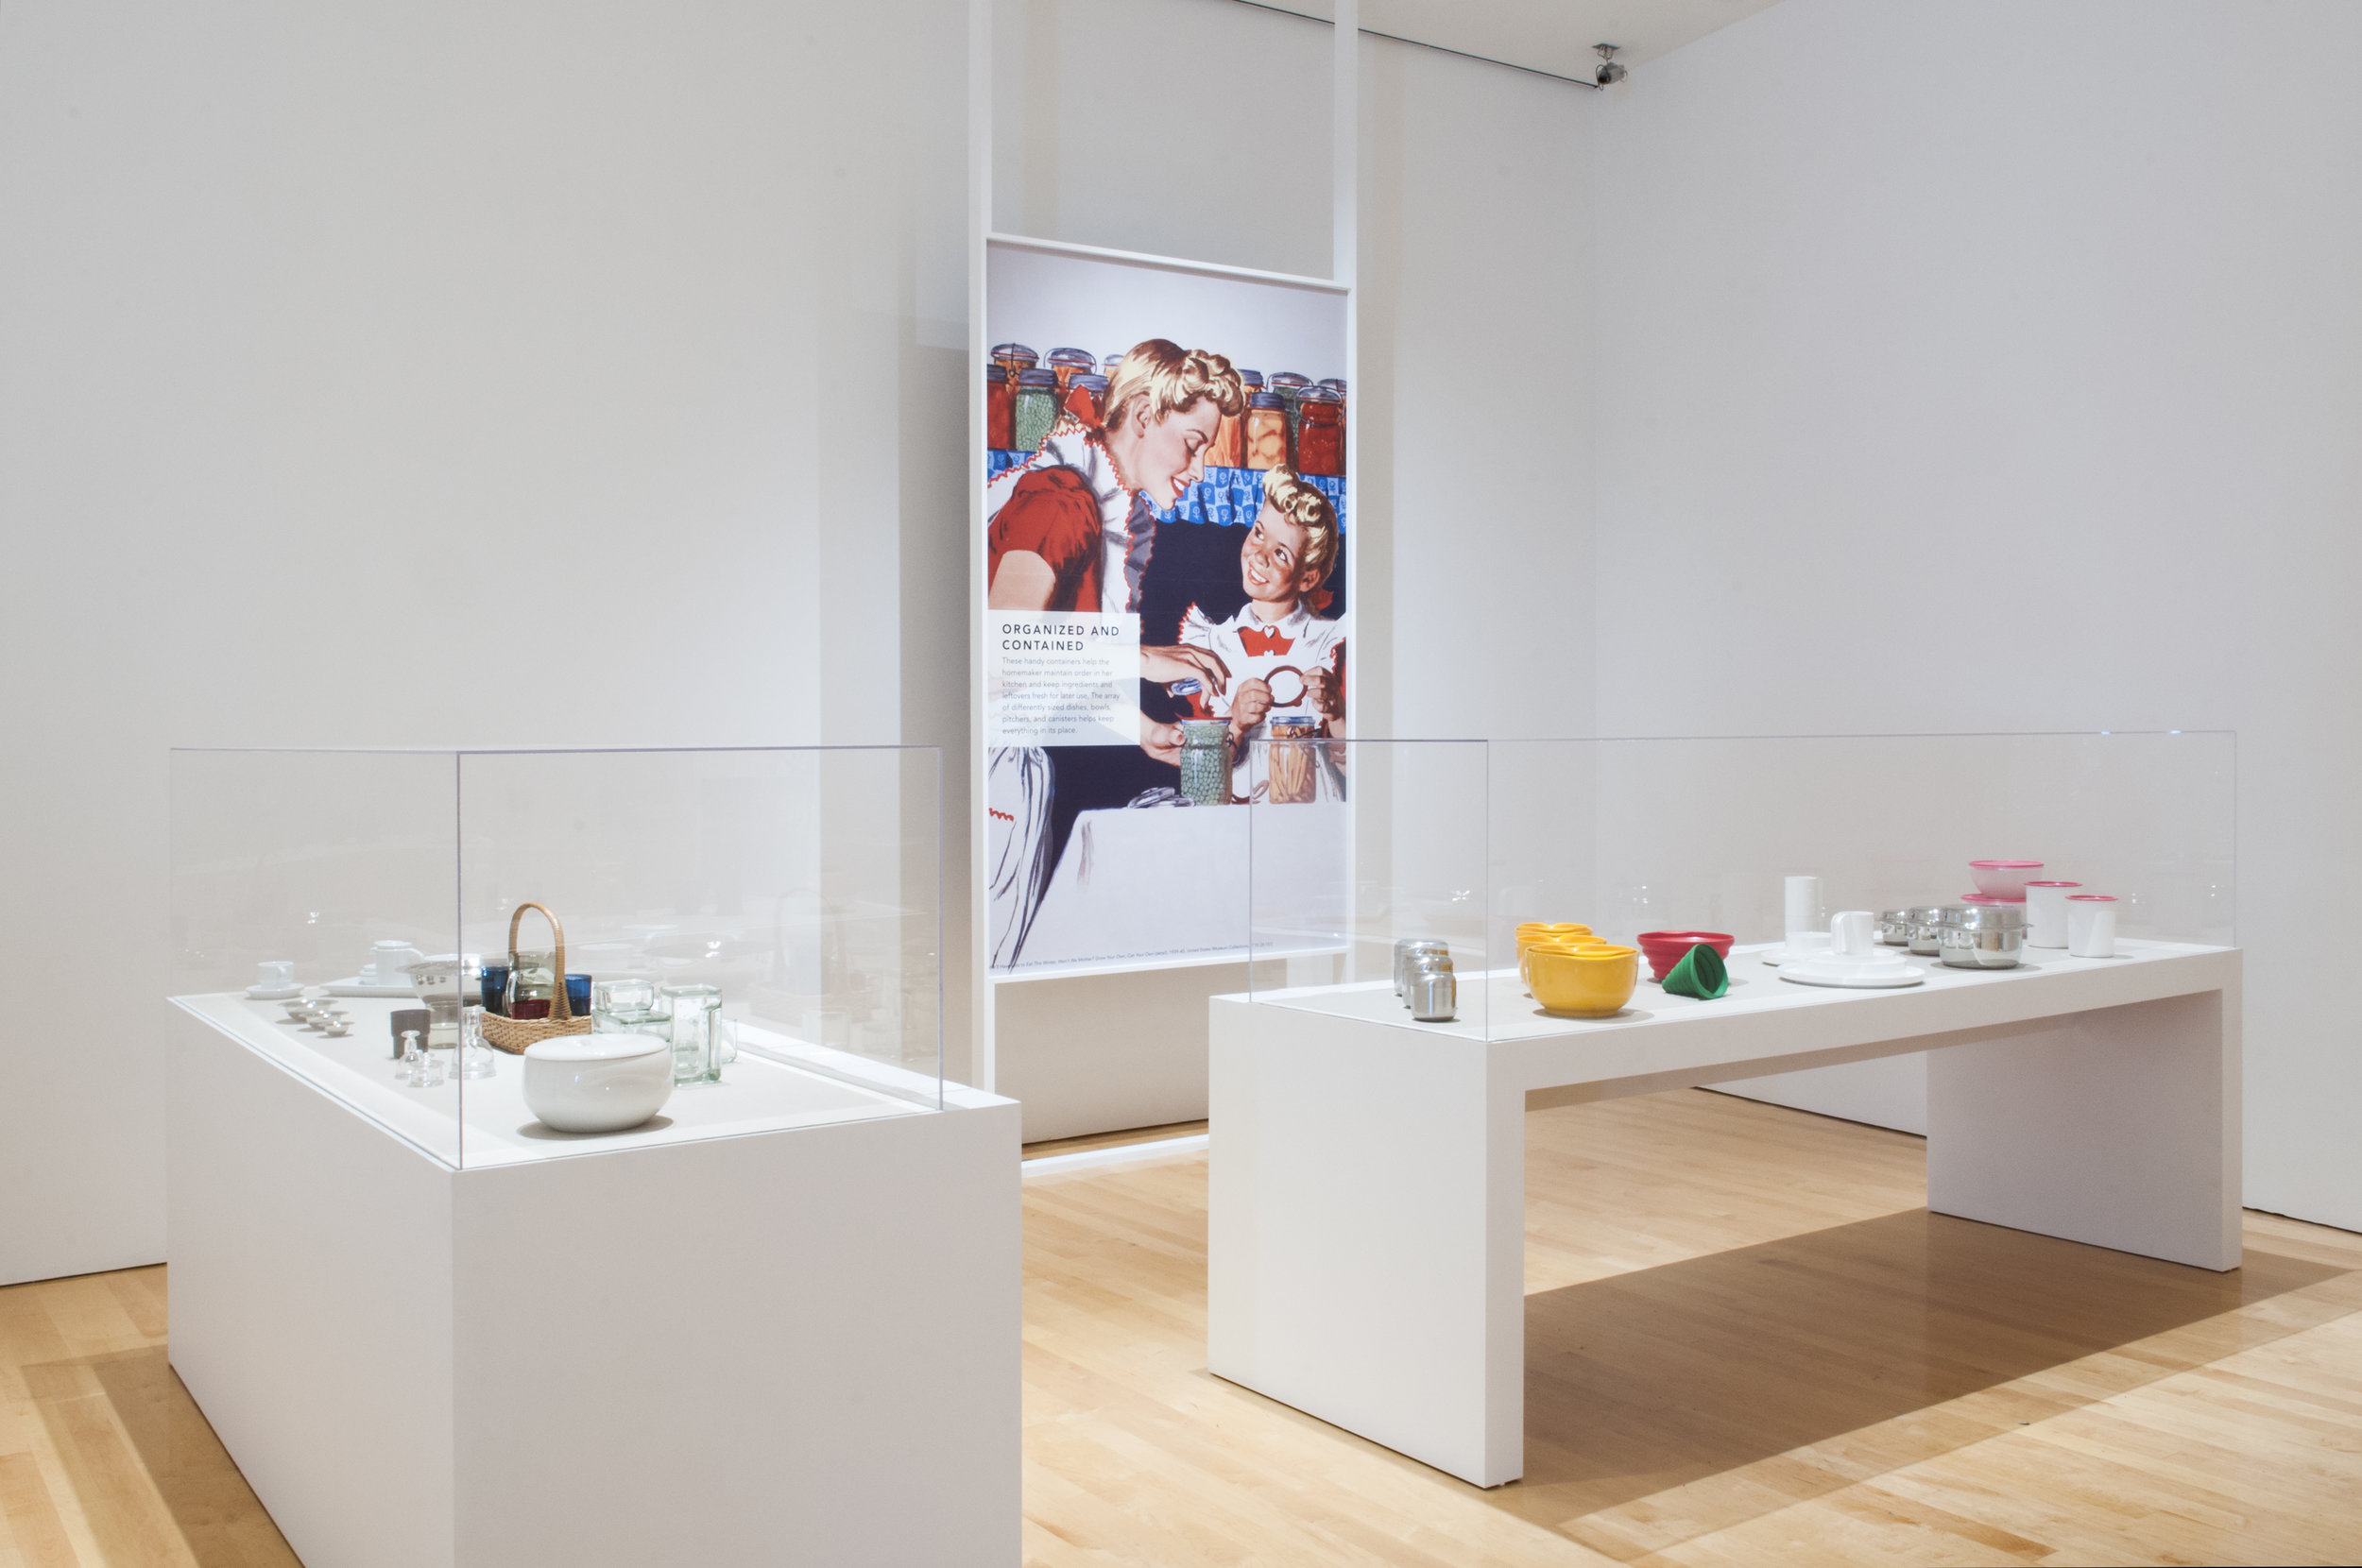 Collab Gallery, Philadelphia Museum of Art, 2014.